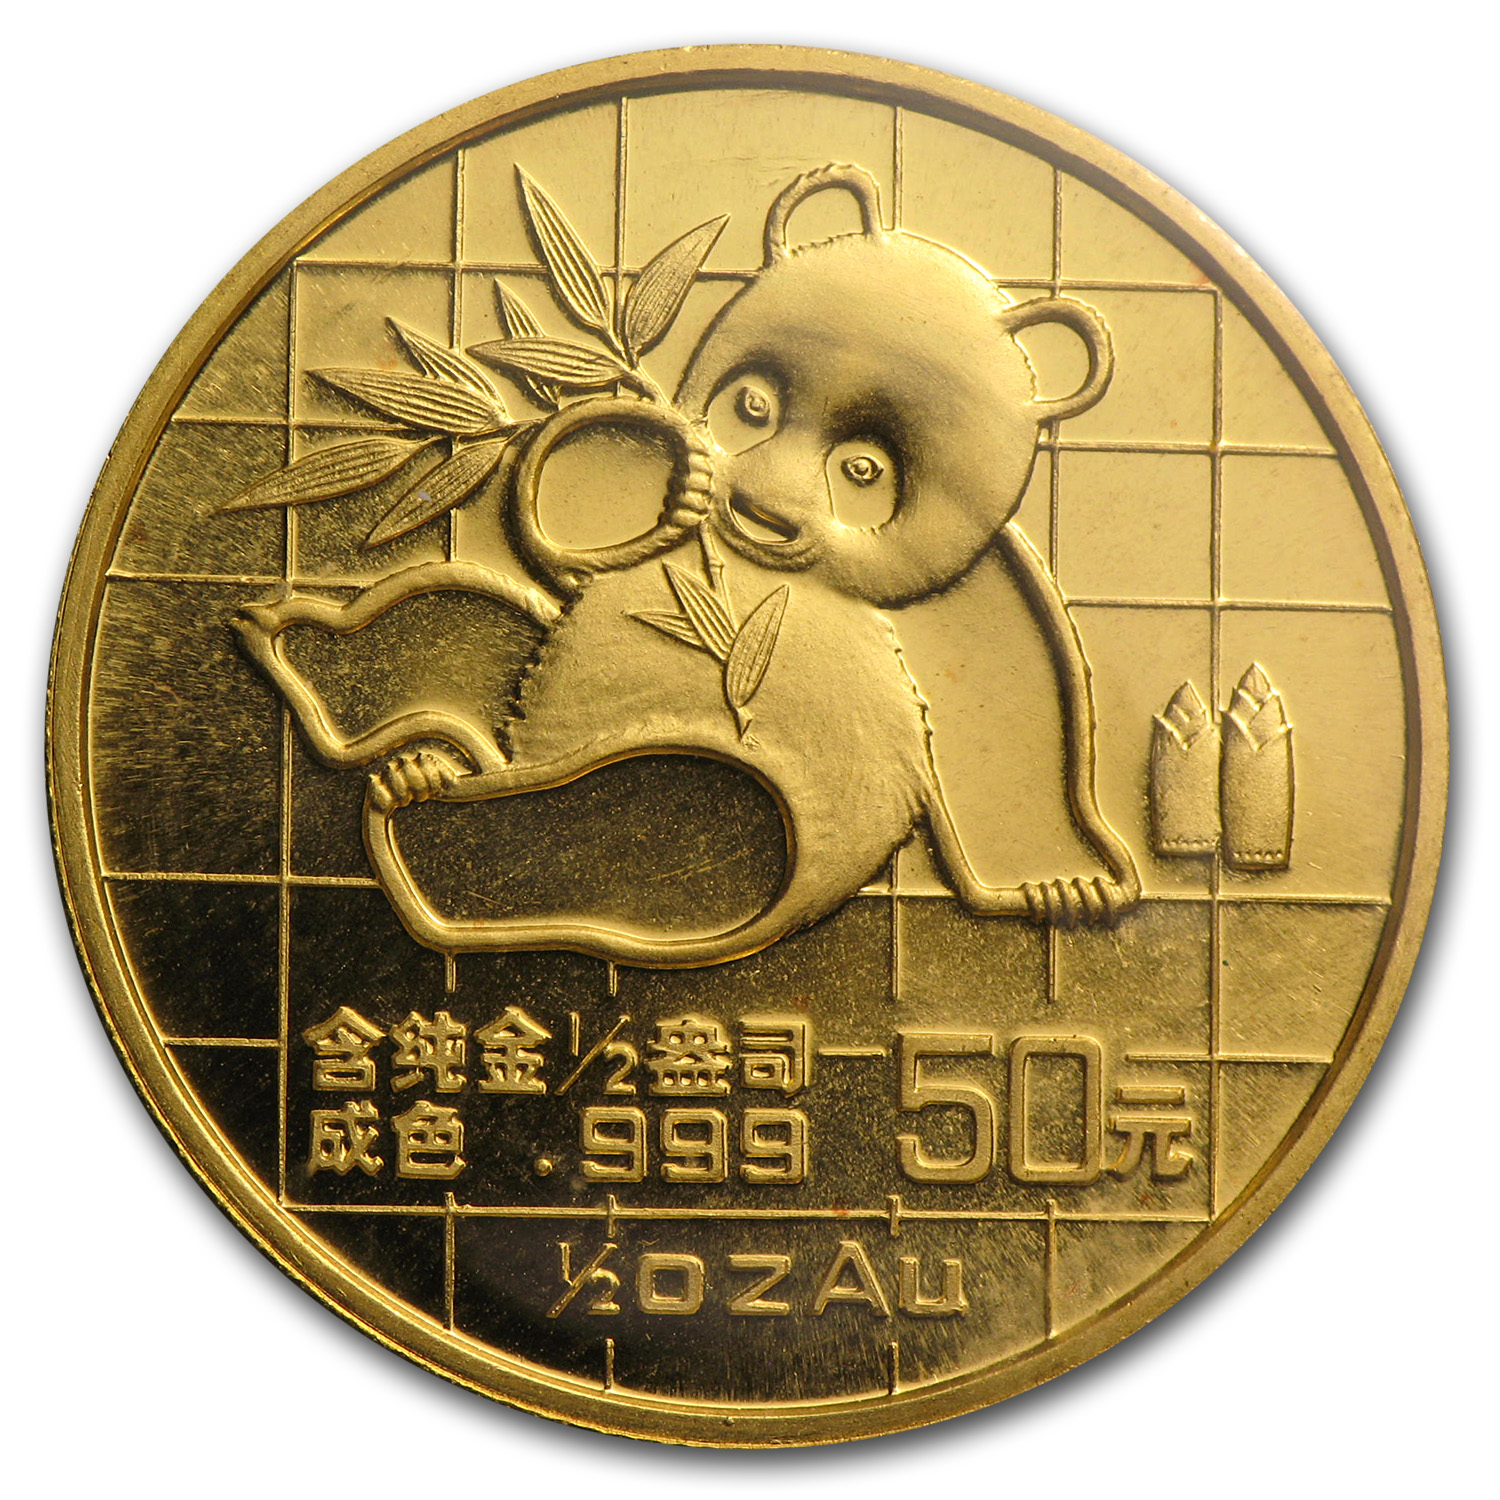 1989 China 1/2 oz Gold Panda Small Date BU (Sealed)